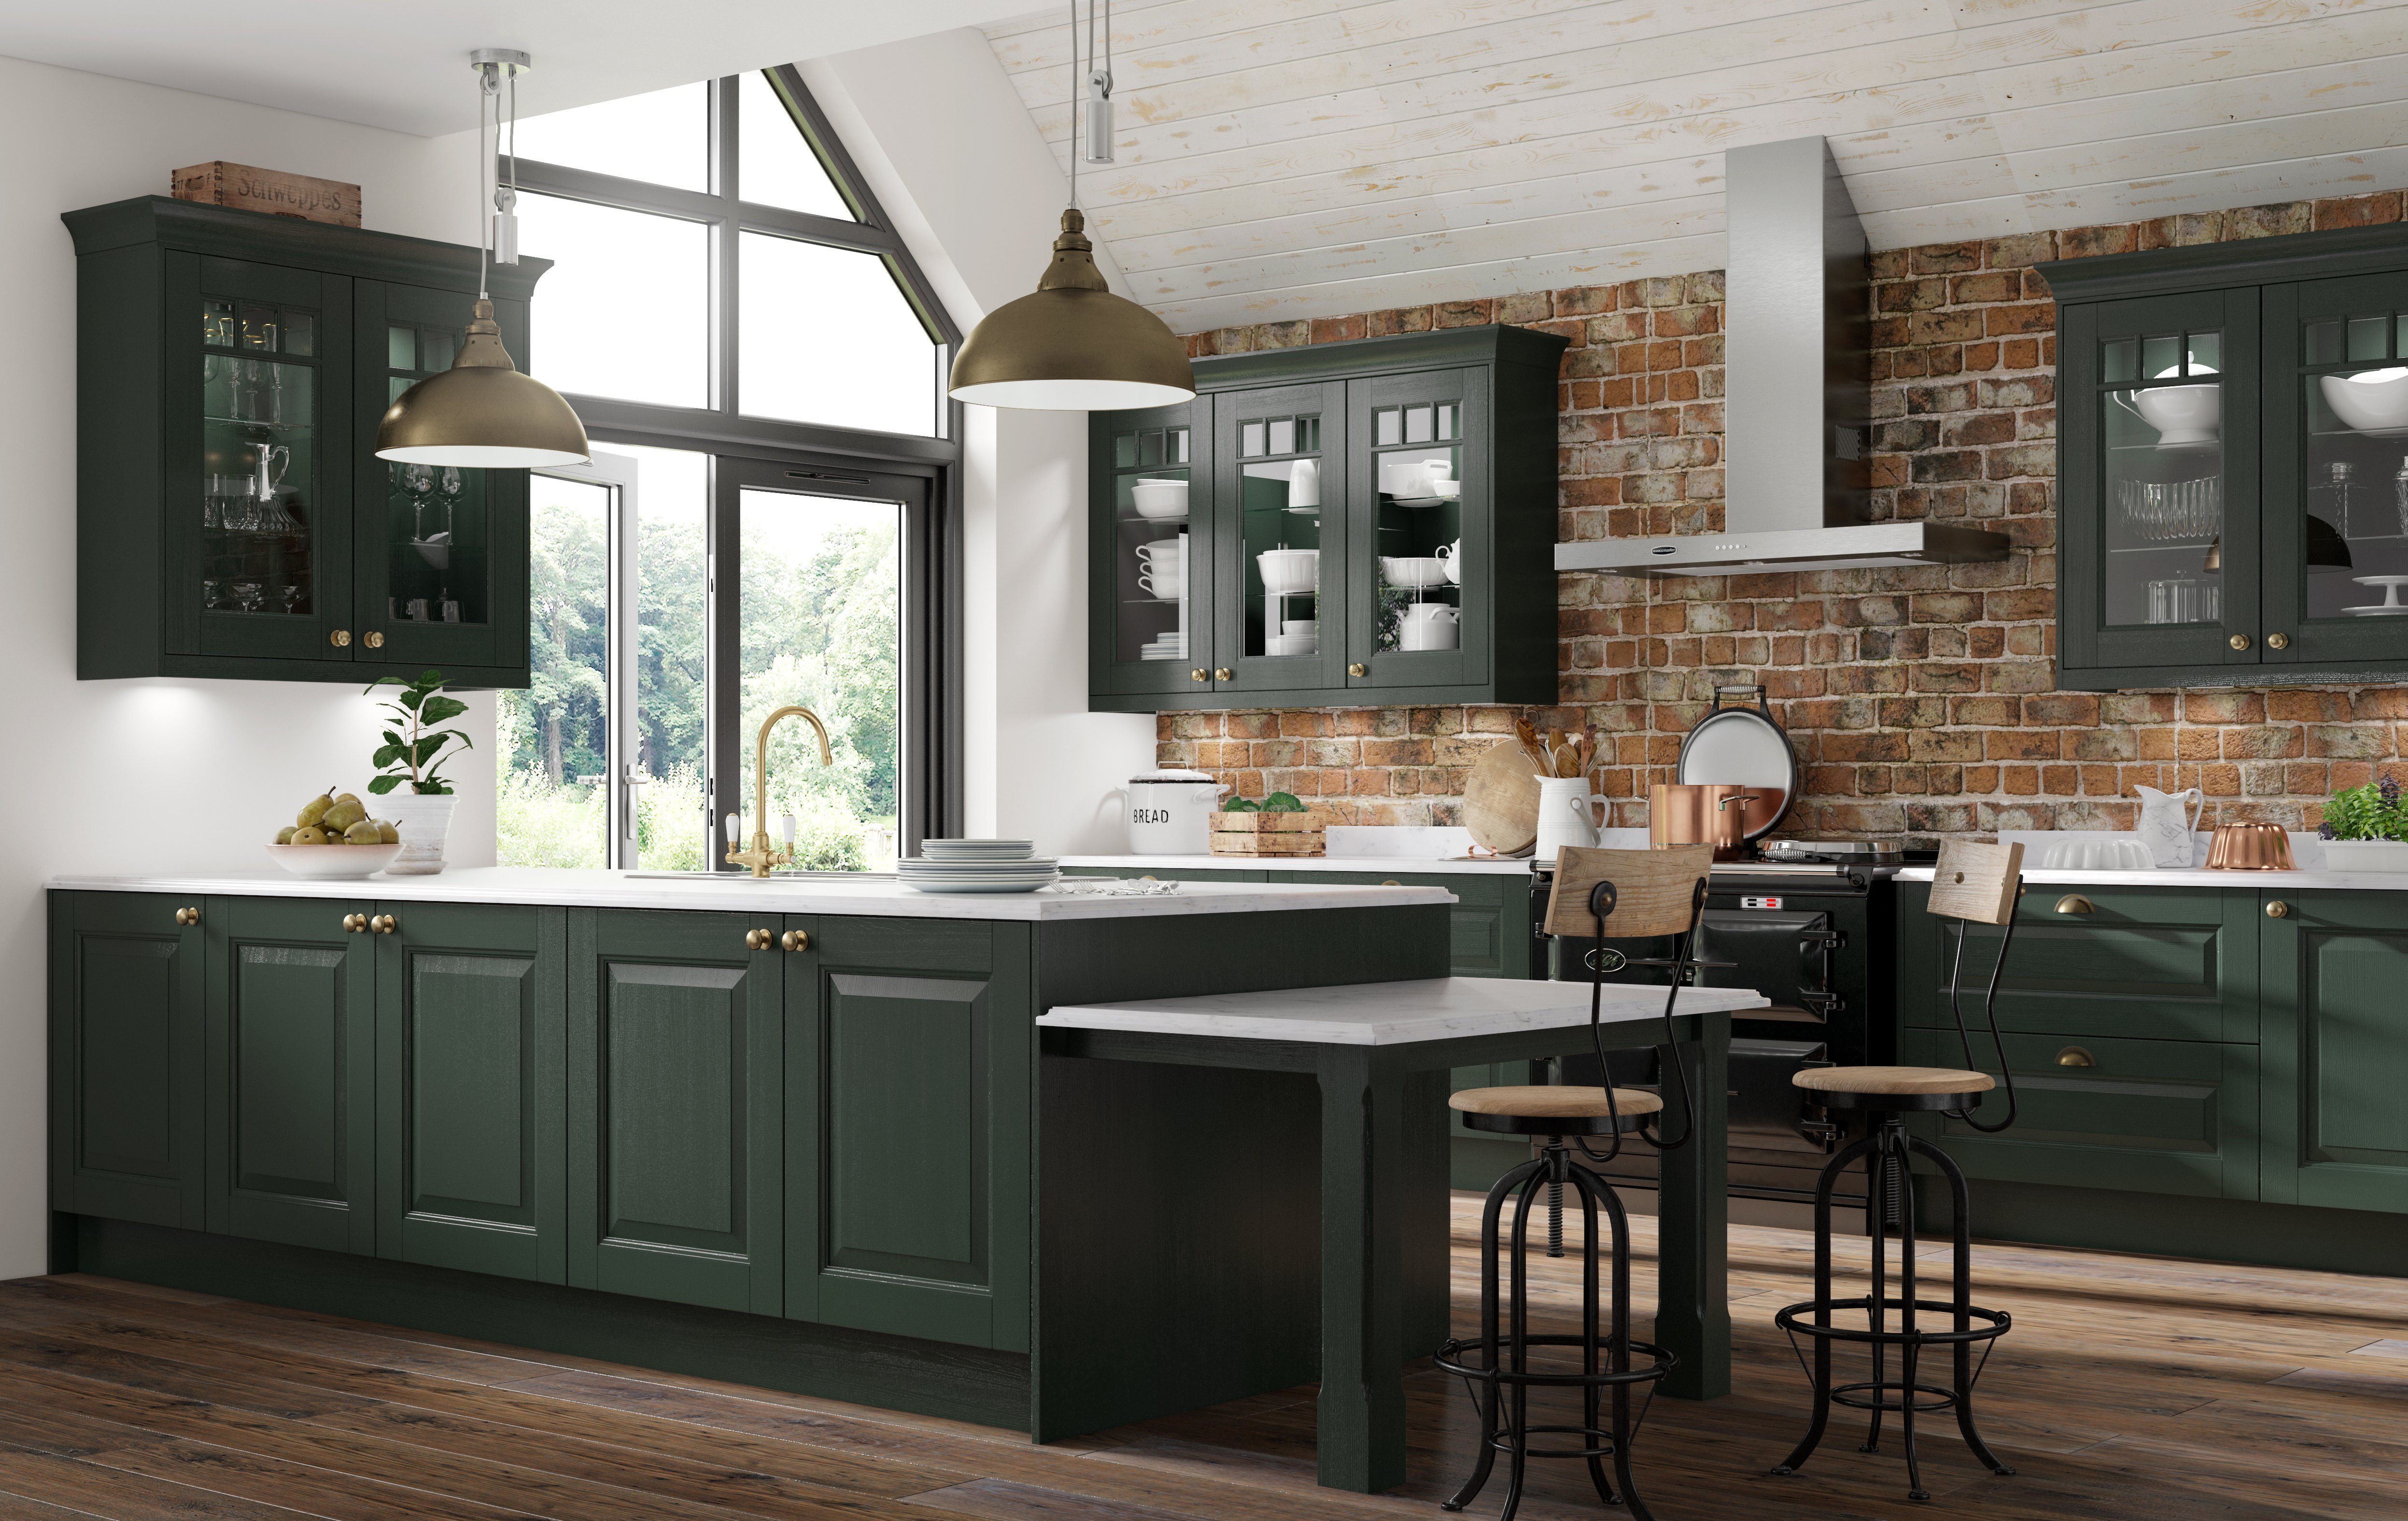 Dark green kitchen with white worktops, showing an island and breakfast bar with units along the wall